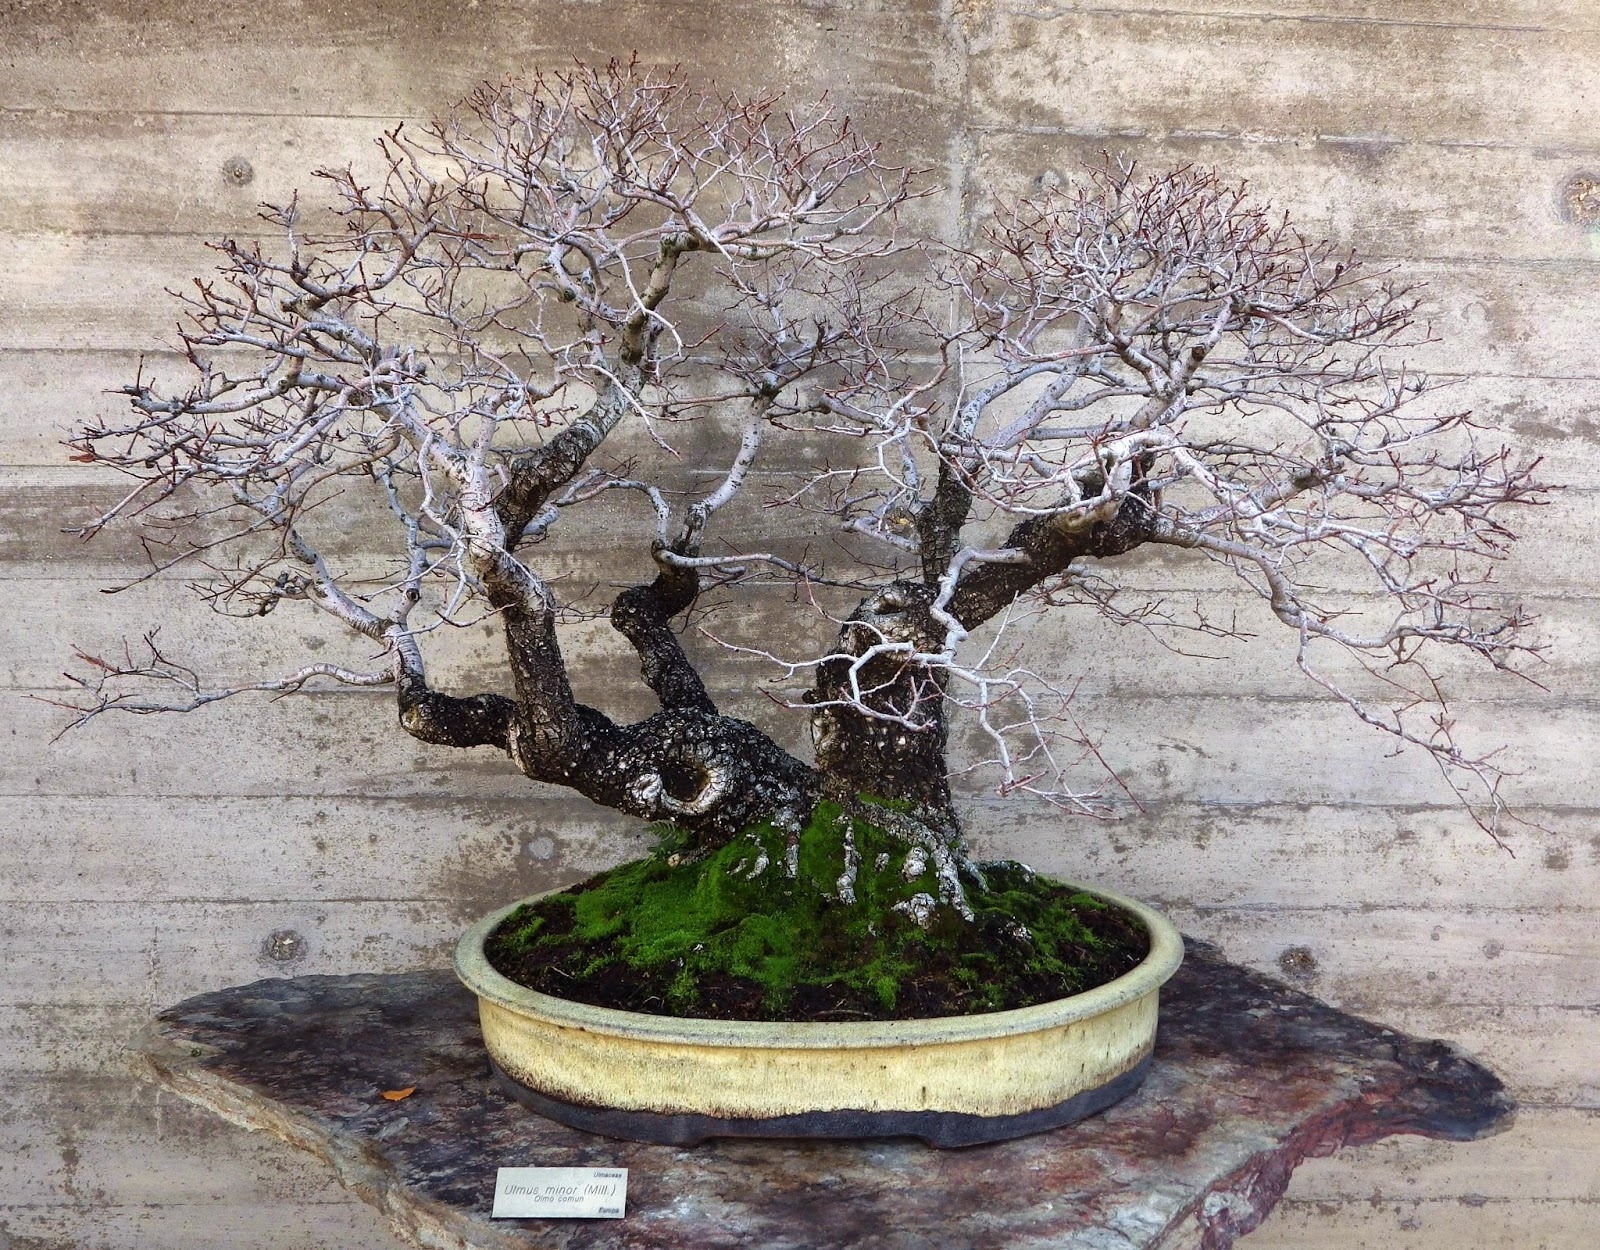 Bespoke Bonsai Stands Even More Trees From Luis Vallejo Estudio